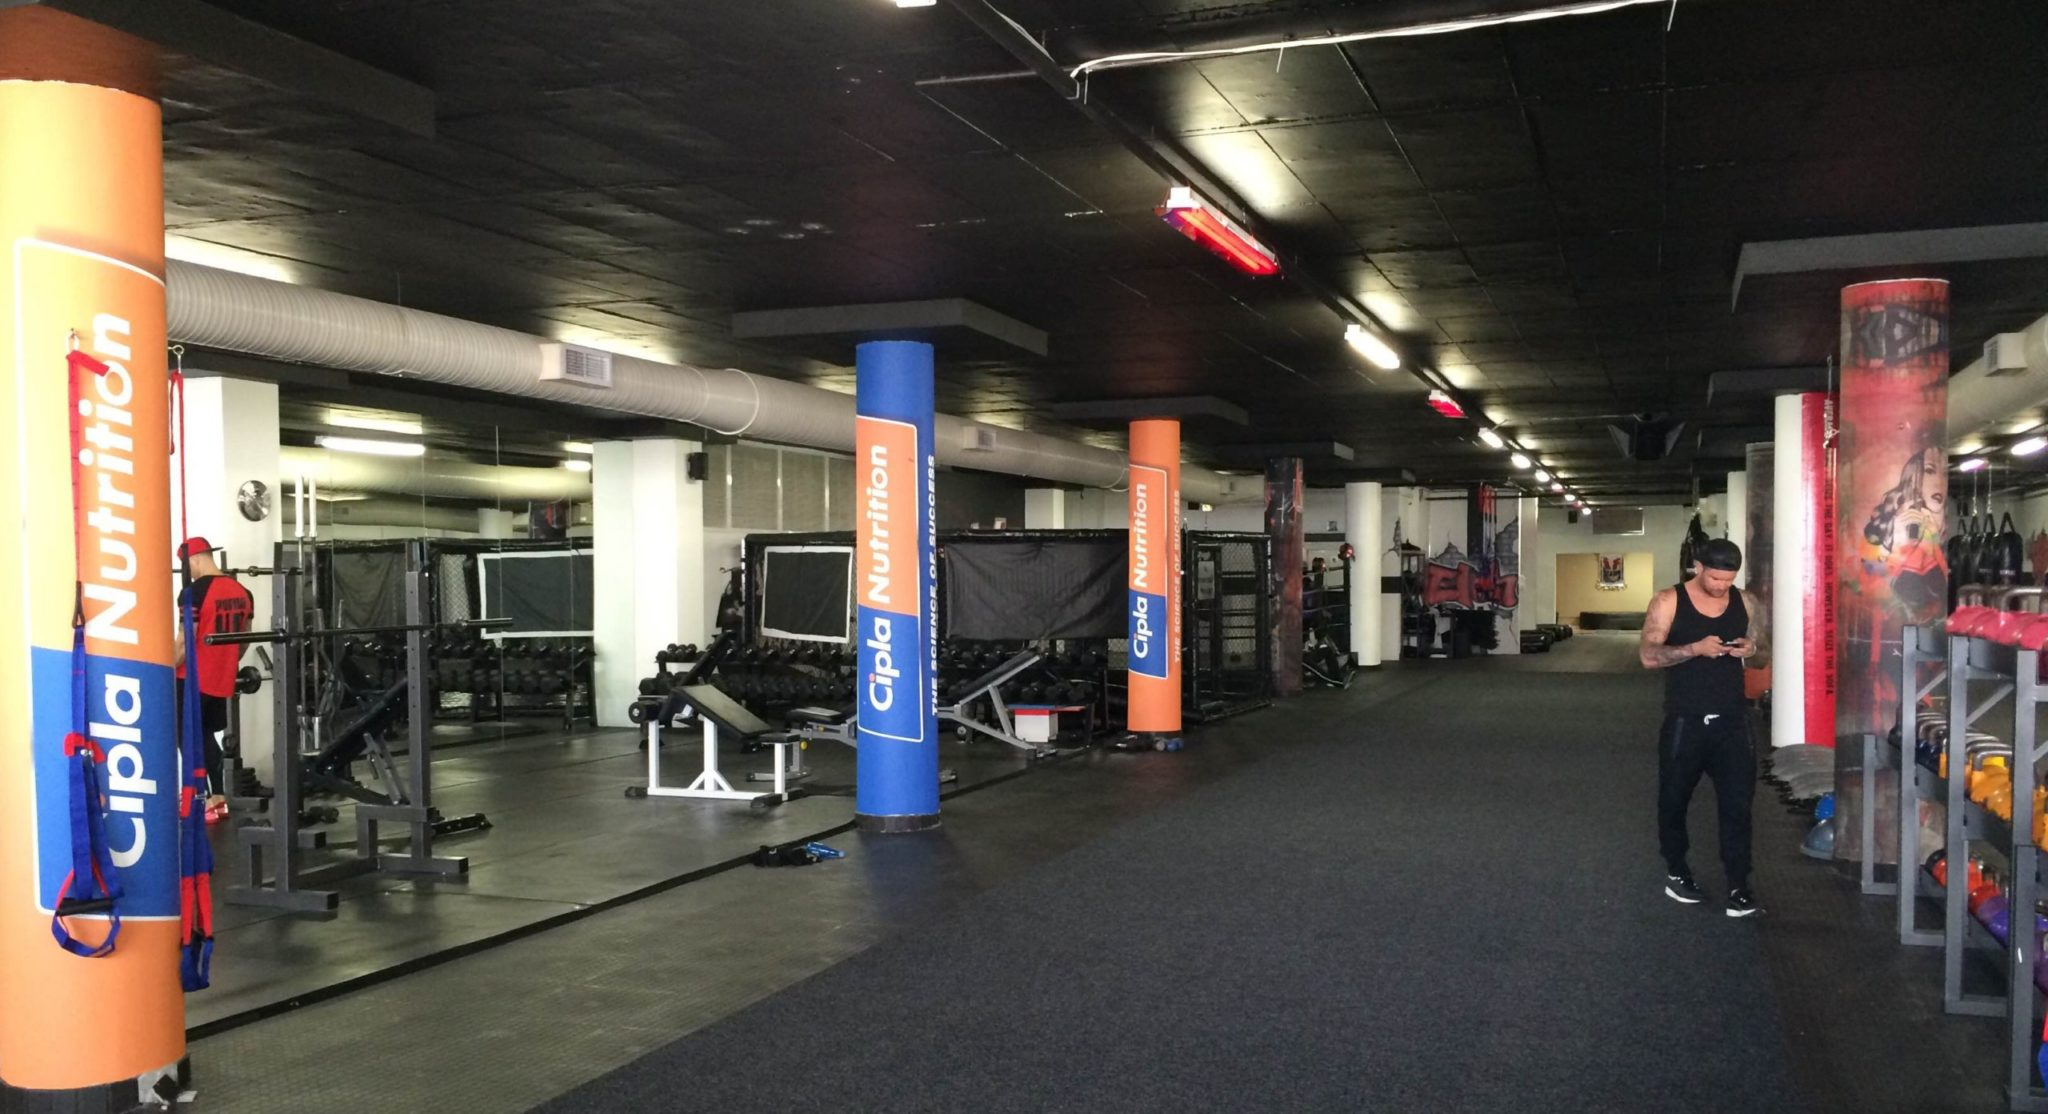 OneUp gym opens in Green Point